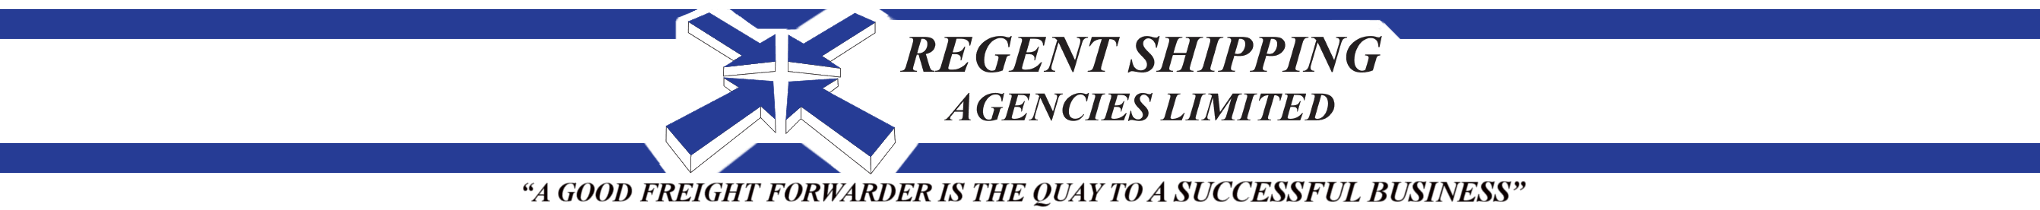 Regent Shipping Agencies Ltd, The Quay to a succesful business is a good frieght forwarder